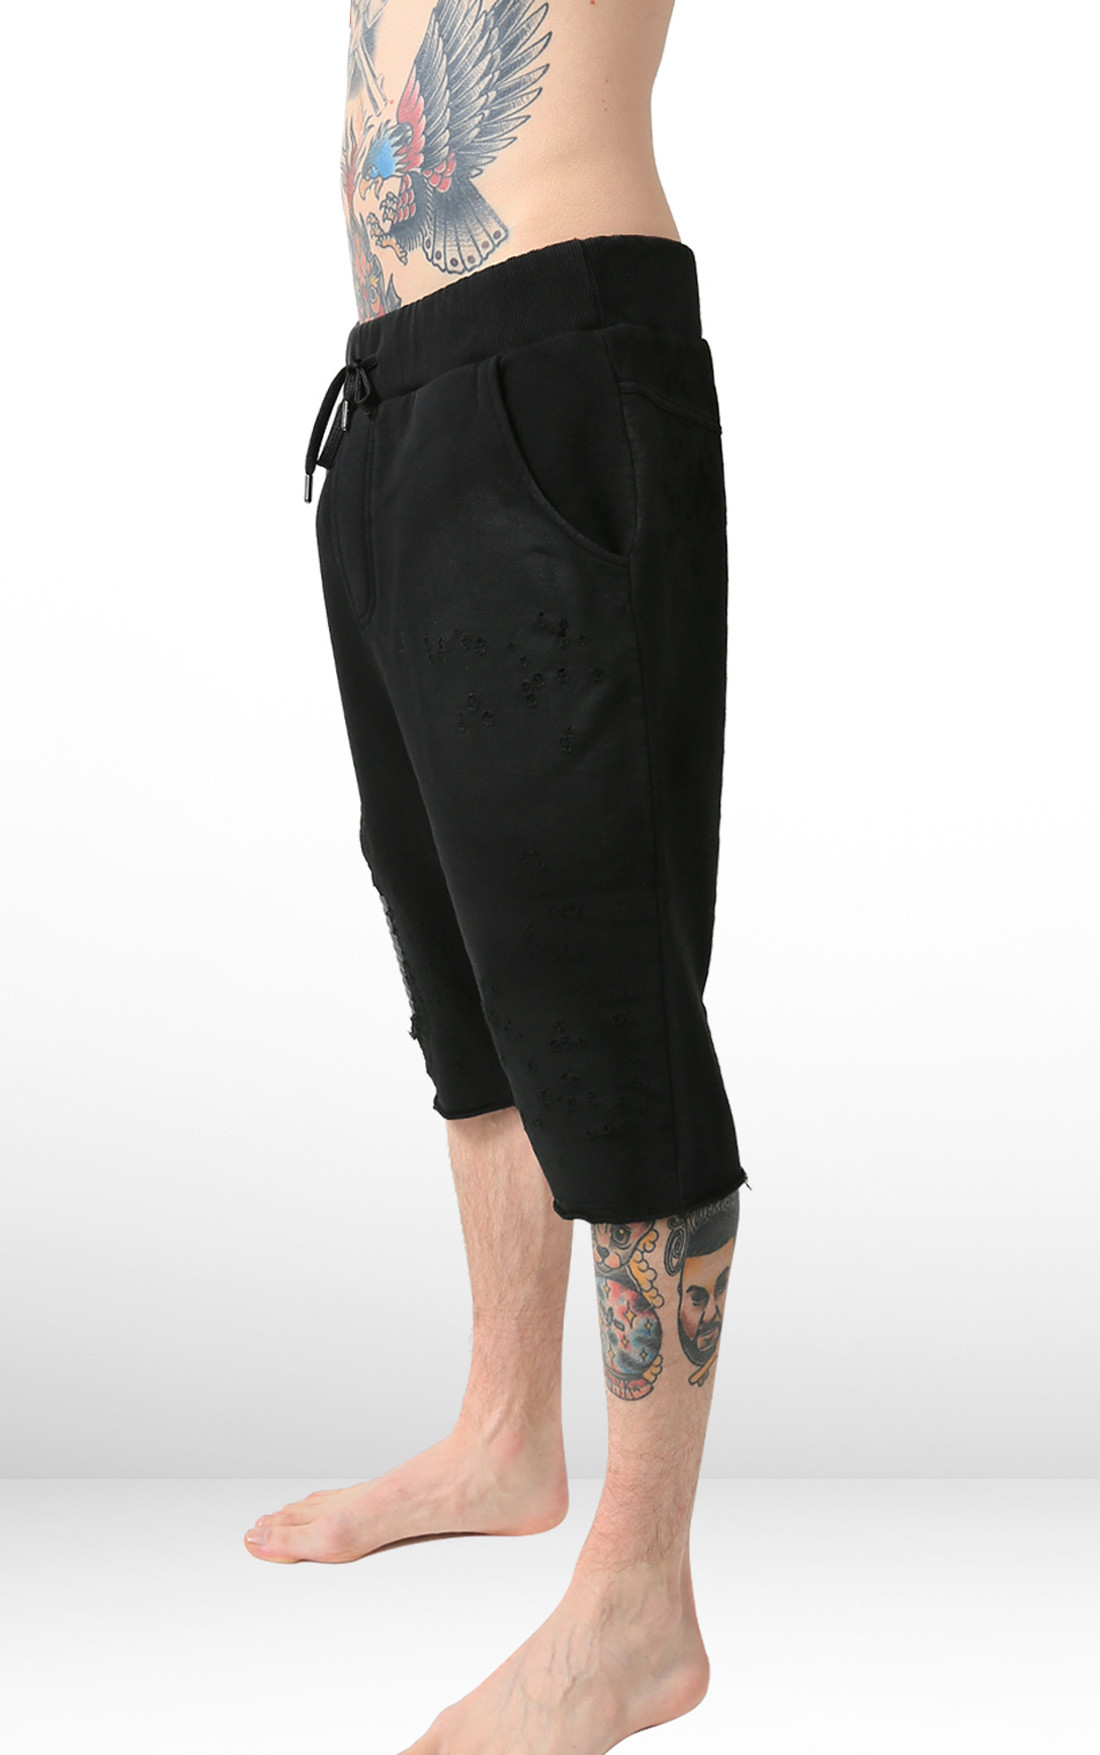 RH45 - Black Shorts with Leather Detail (P405)